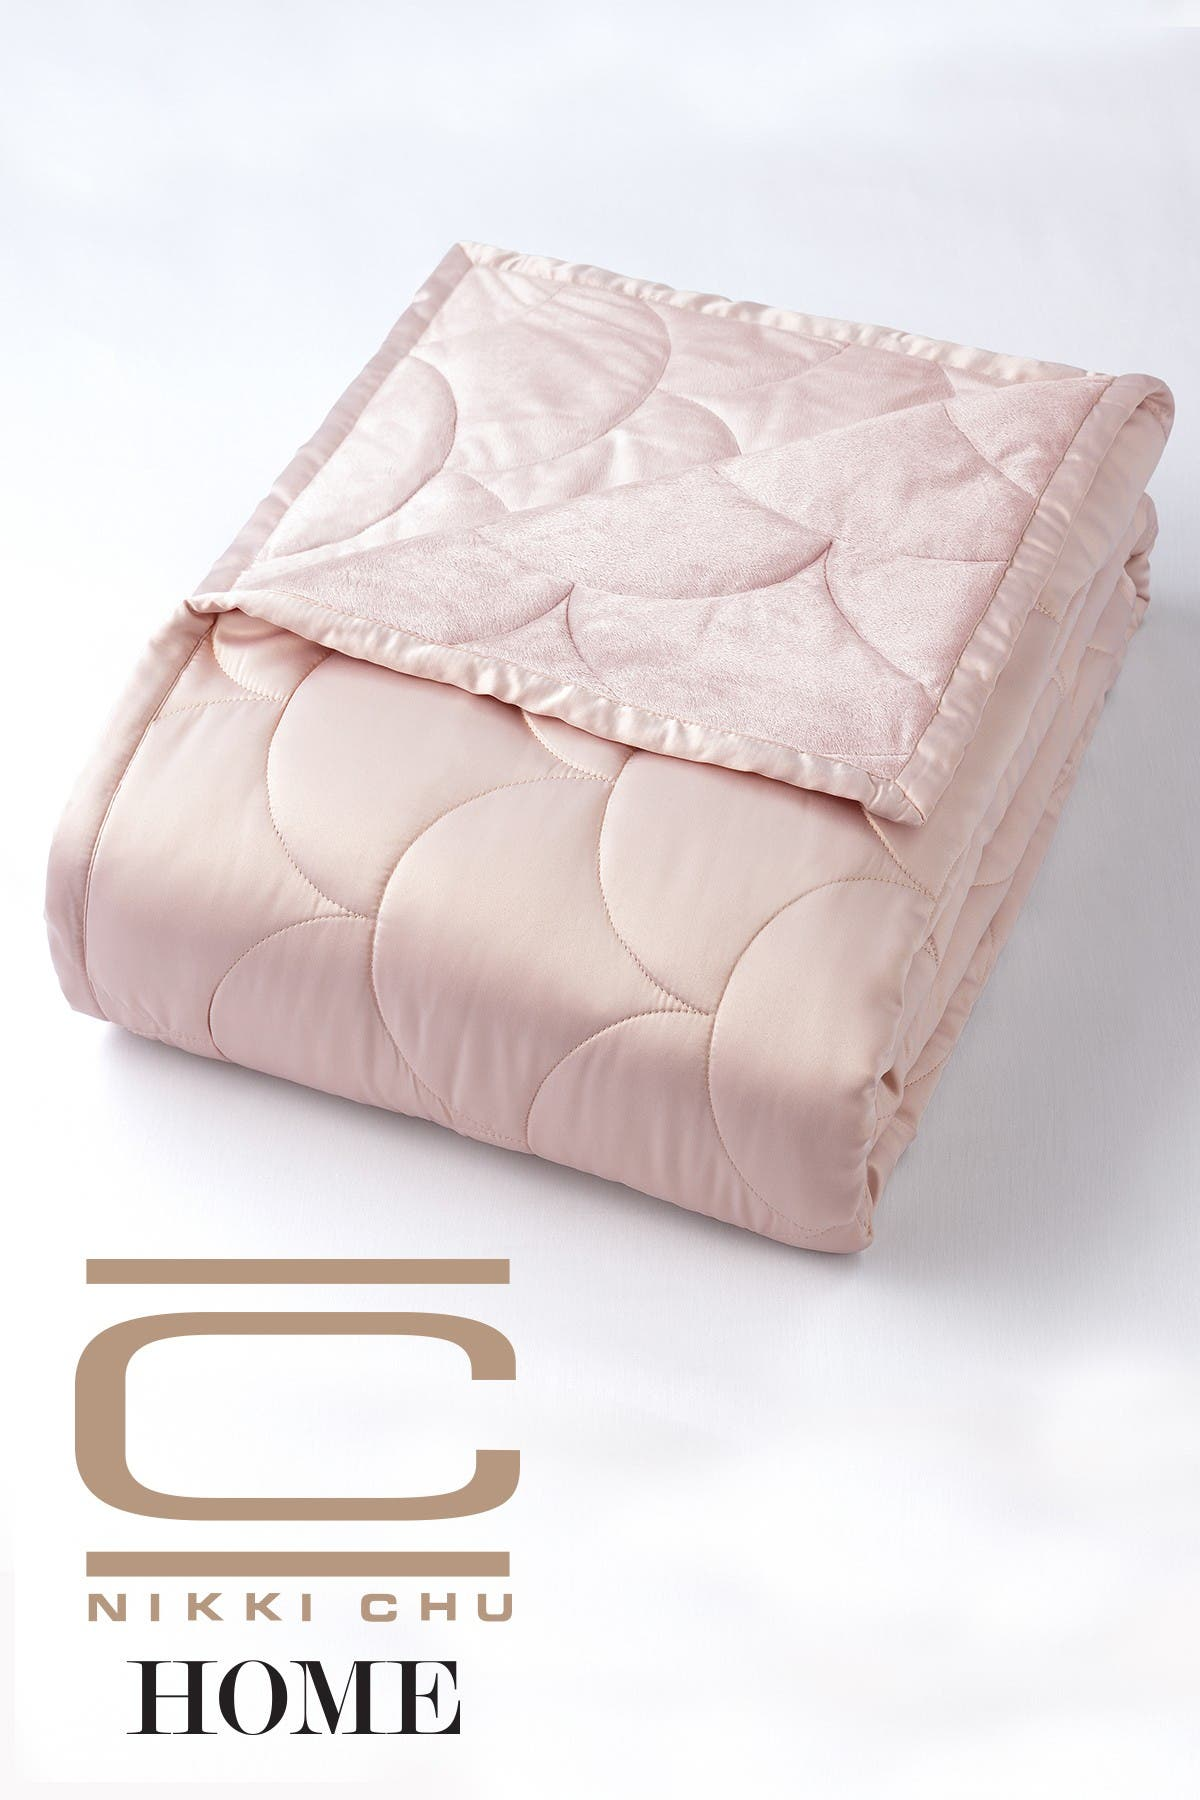 Image of CLIMAREST Nikki Chu Twin Velvet/Satin Reversible Blanket - Rose